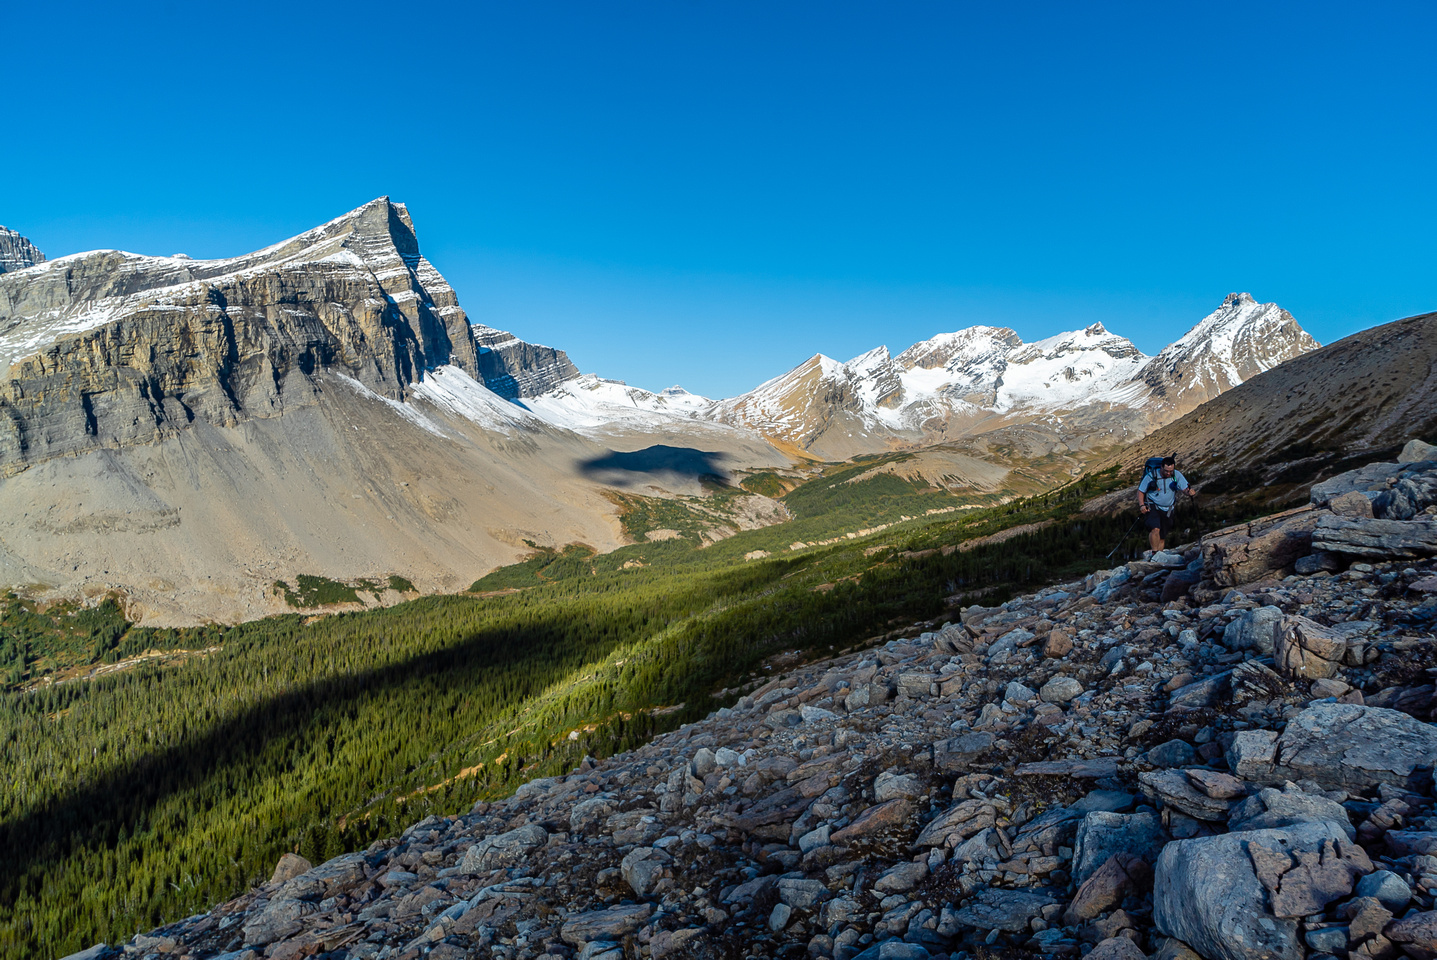 Eric comes along behind me with Cataract Pass at distant center.